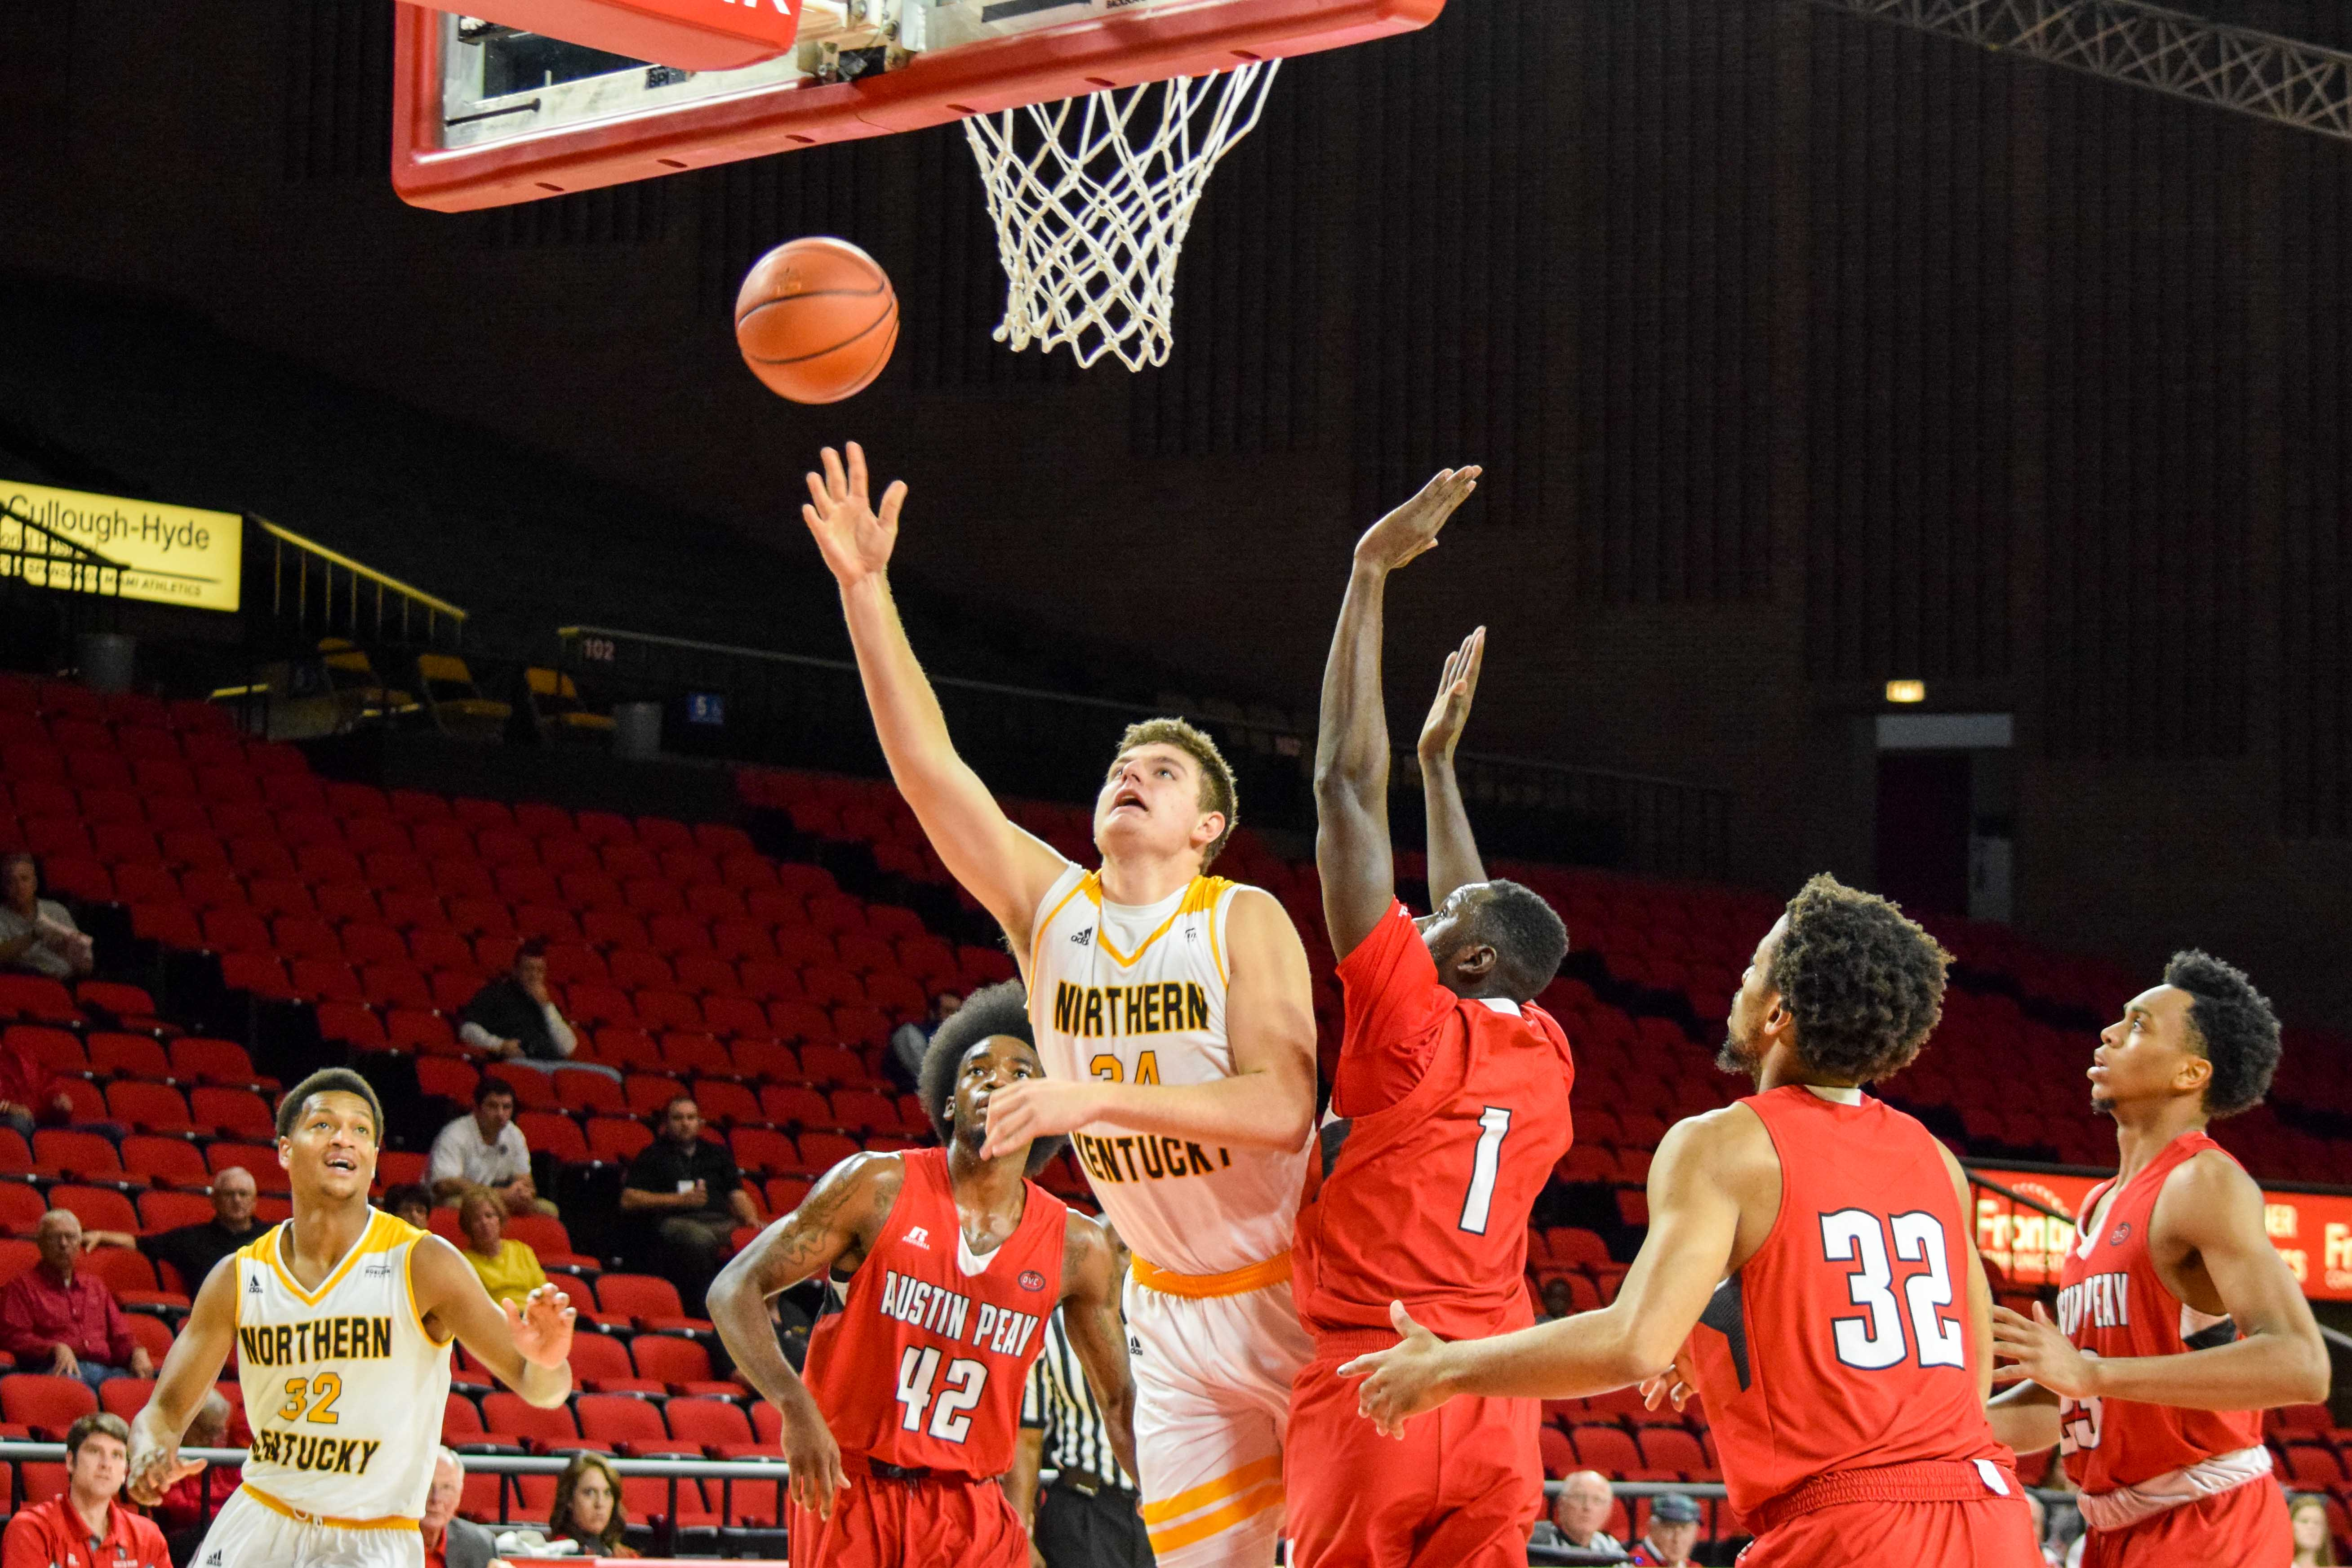 NKU's Drew McDonald (34) had a career-high 32 points Wednesday in a win over Morehead State.